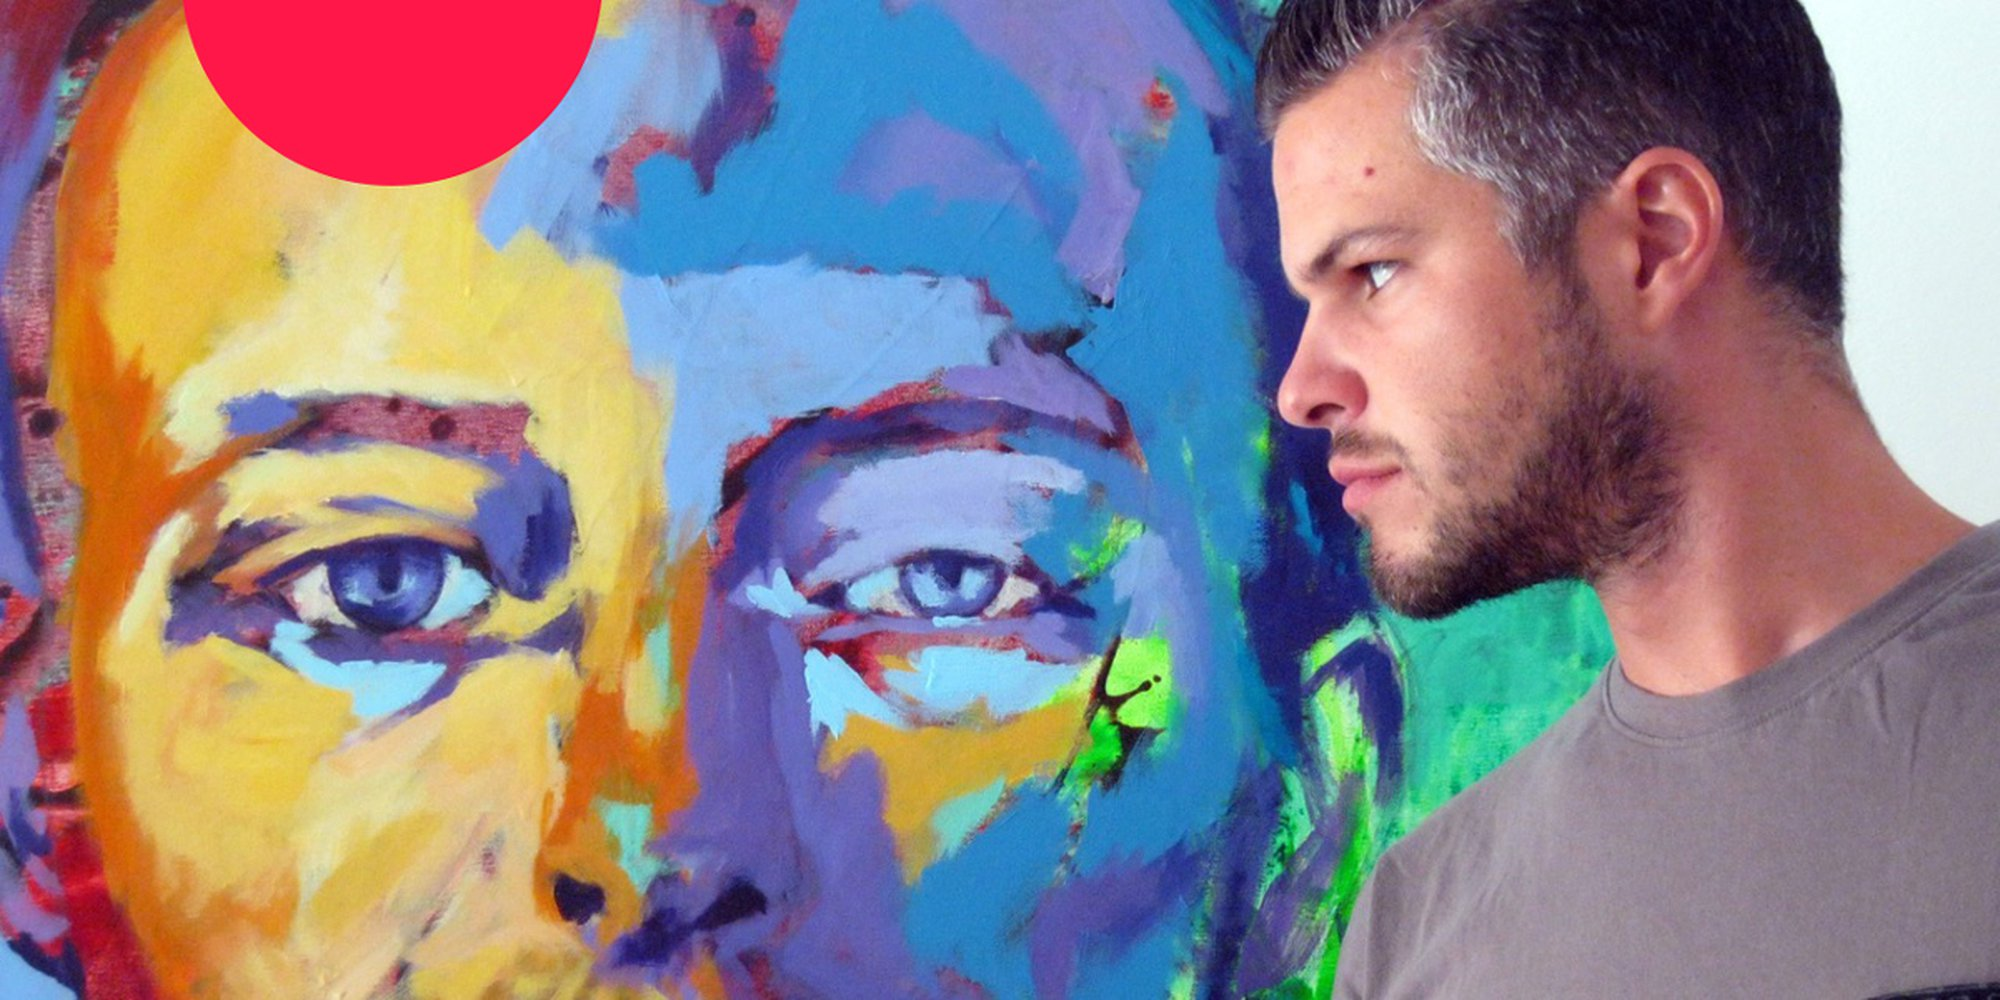 Javier Peña, self-taught artist, talks to Artfinder about creating portraits of famous faces and his love of using colour in his paintings.